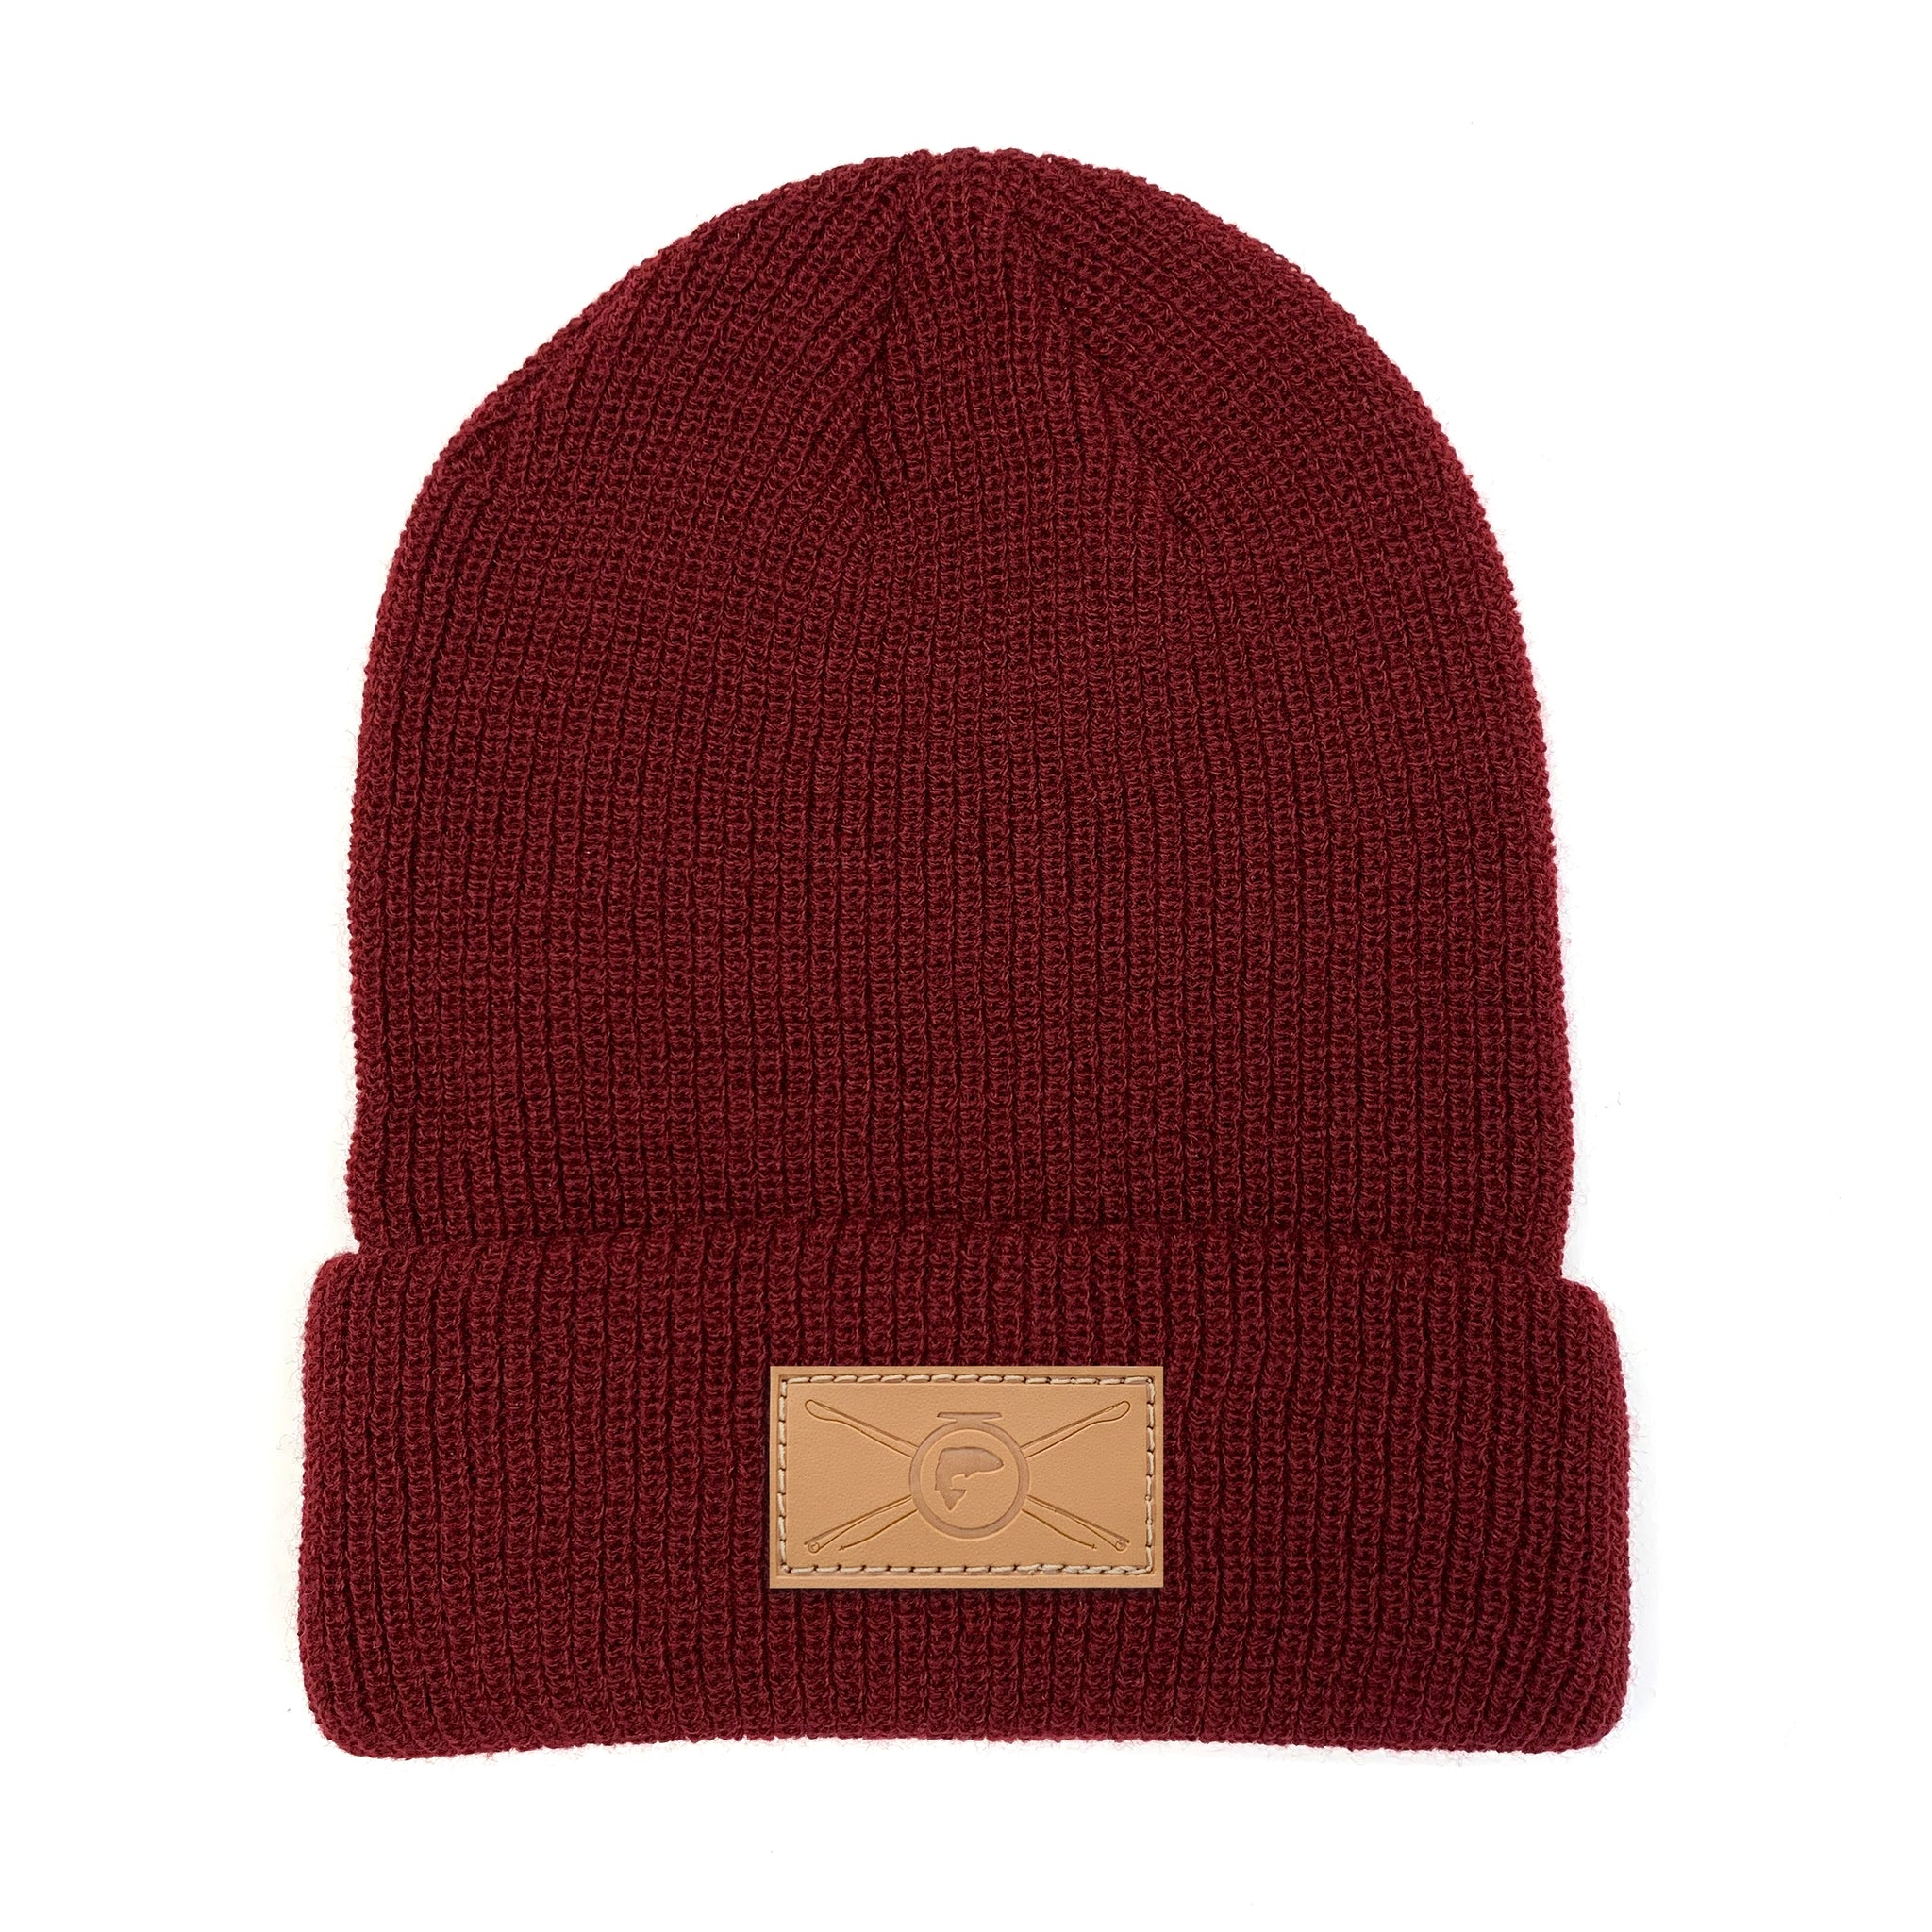 Cuff Beanie - Burgundy - Rods & Roll